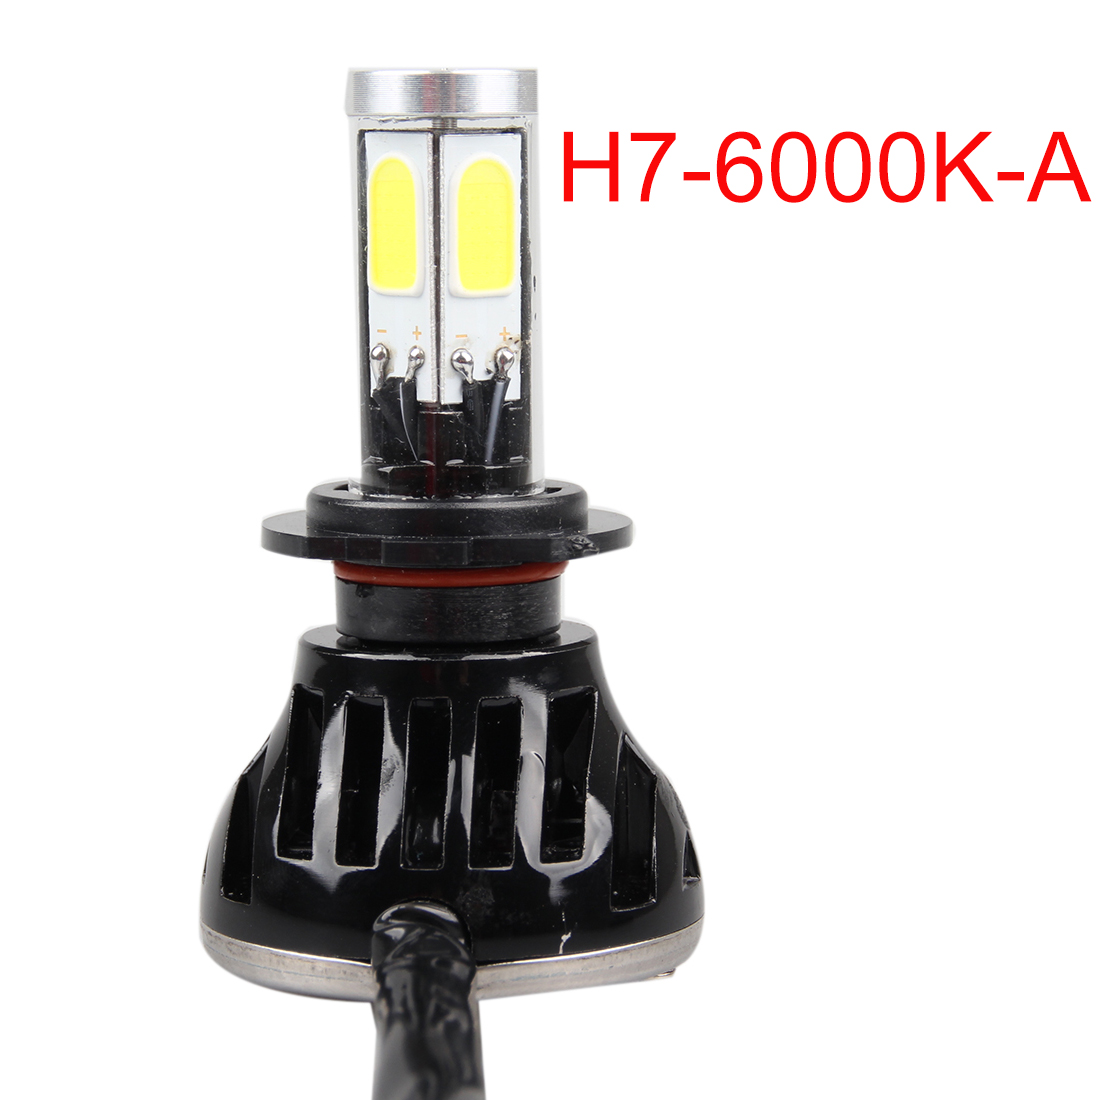 Tonewan 6000K Led Car Auto Headlight H7 80W 8000LM 4 COB Led All In One White Bulb for Automotives H дефлектор auto h k gt 36964